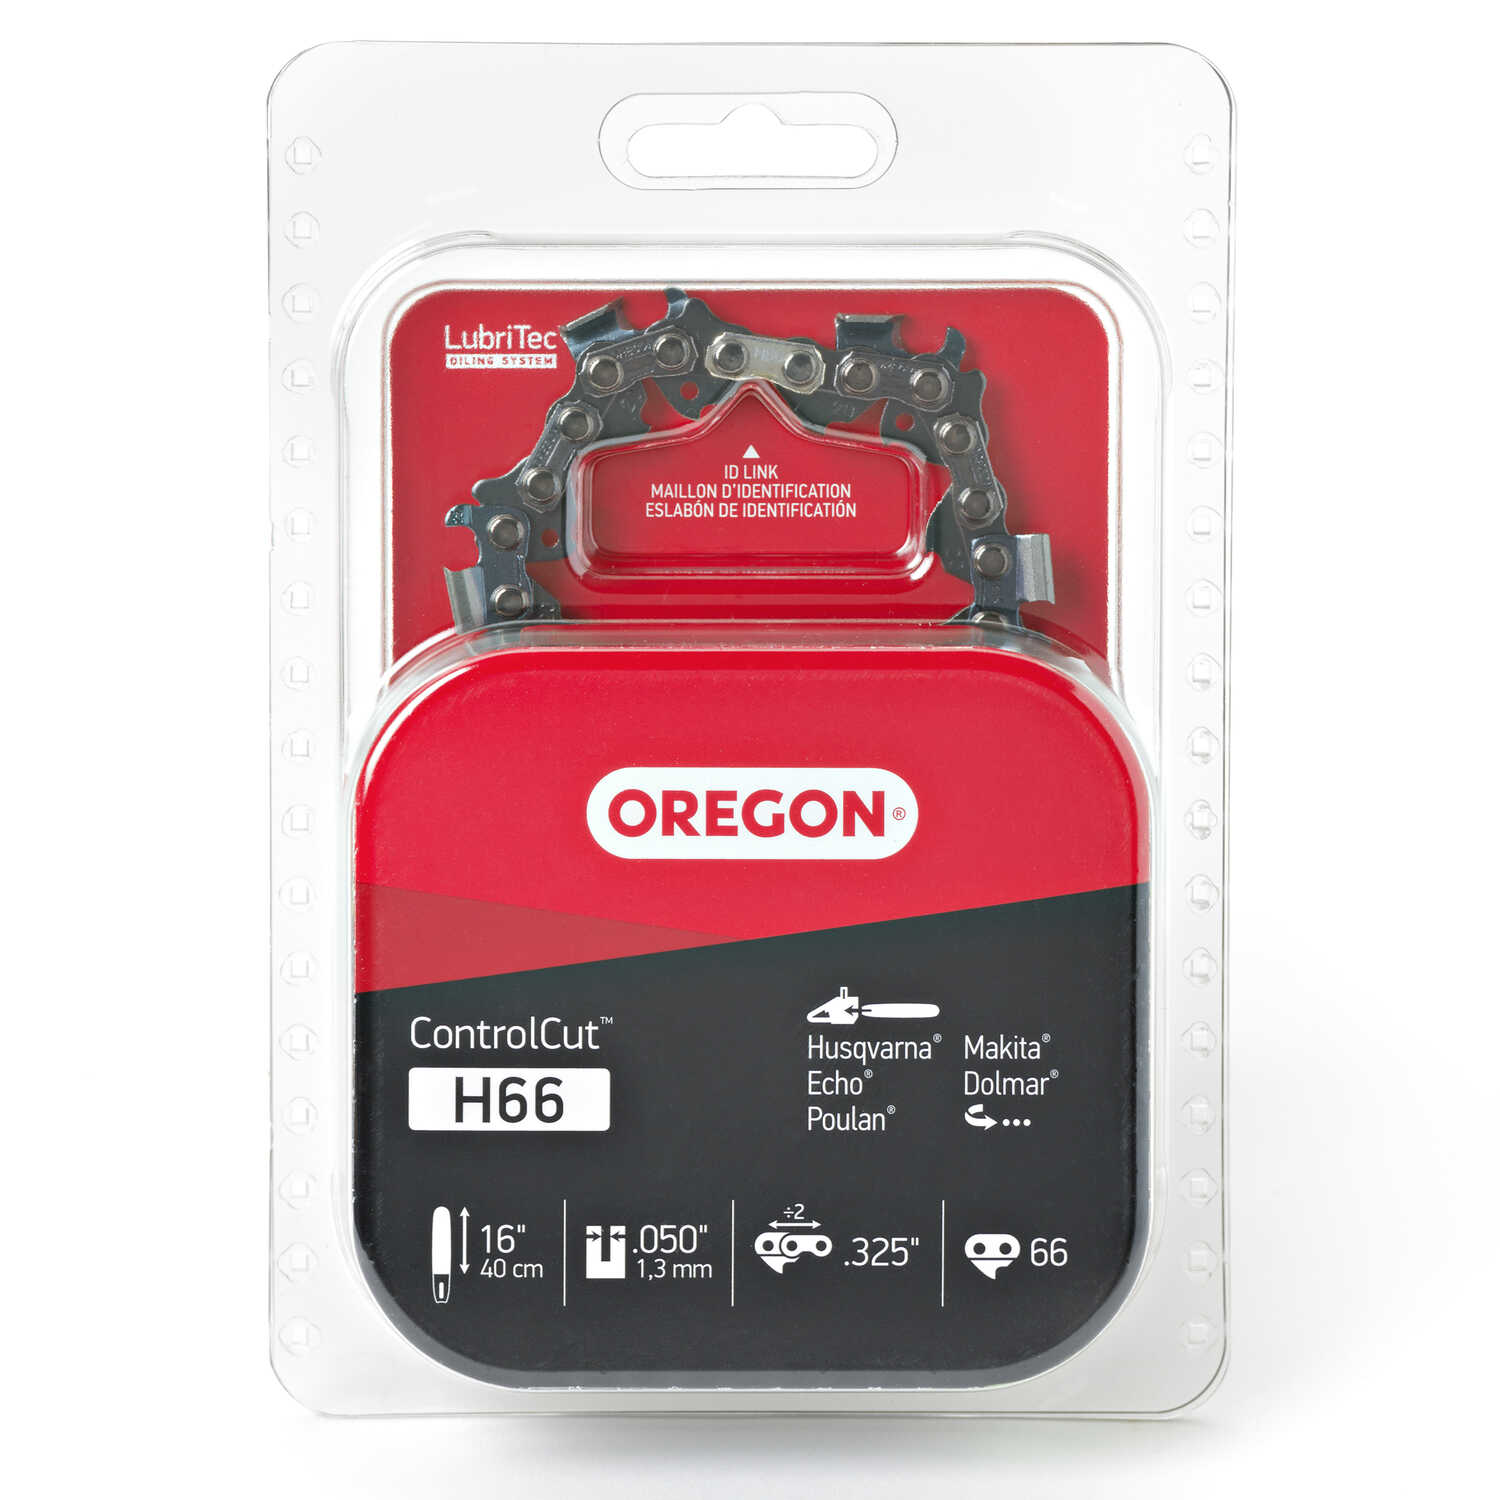 Oregon  Control Cut  16 in. 66 links Chainsaw Chain